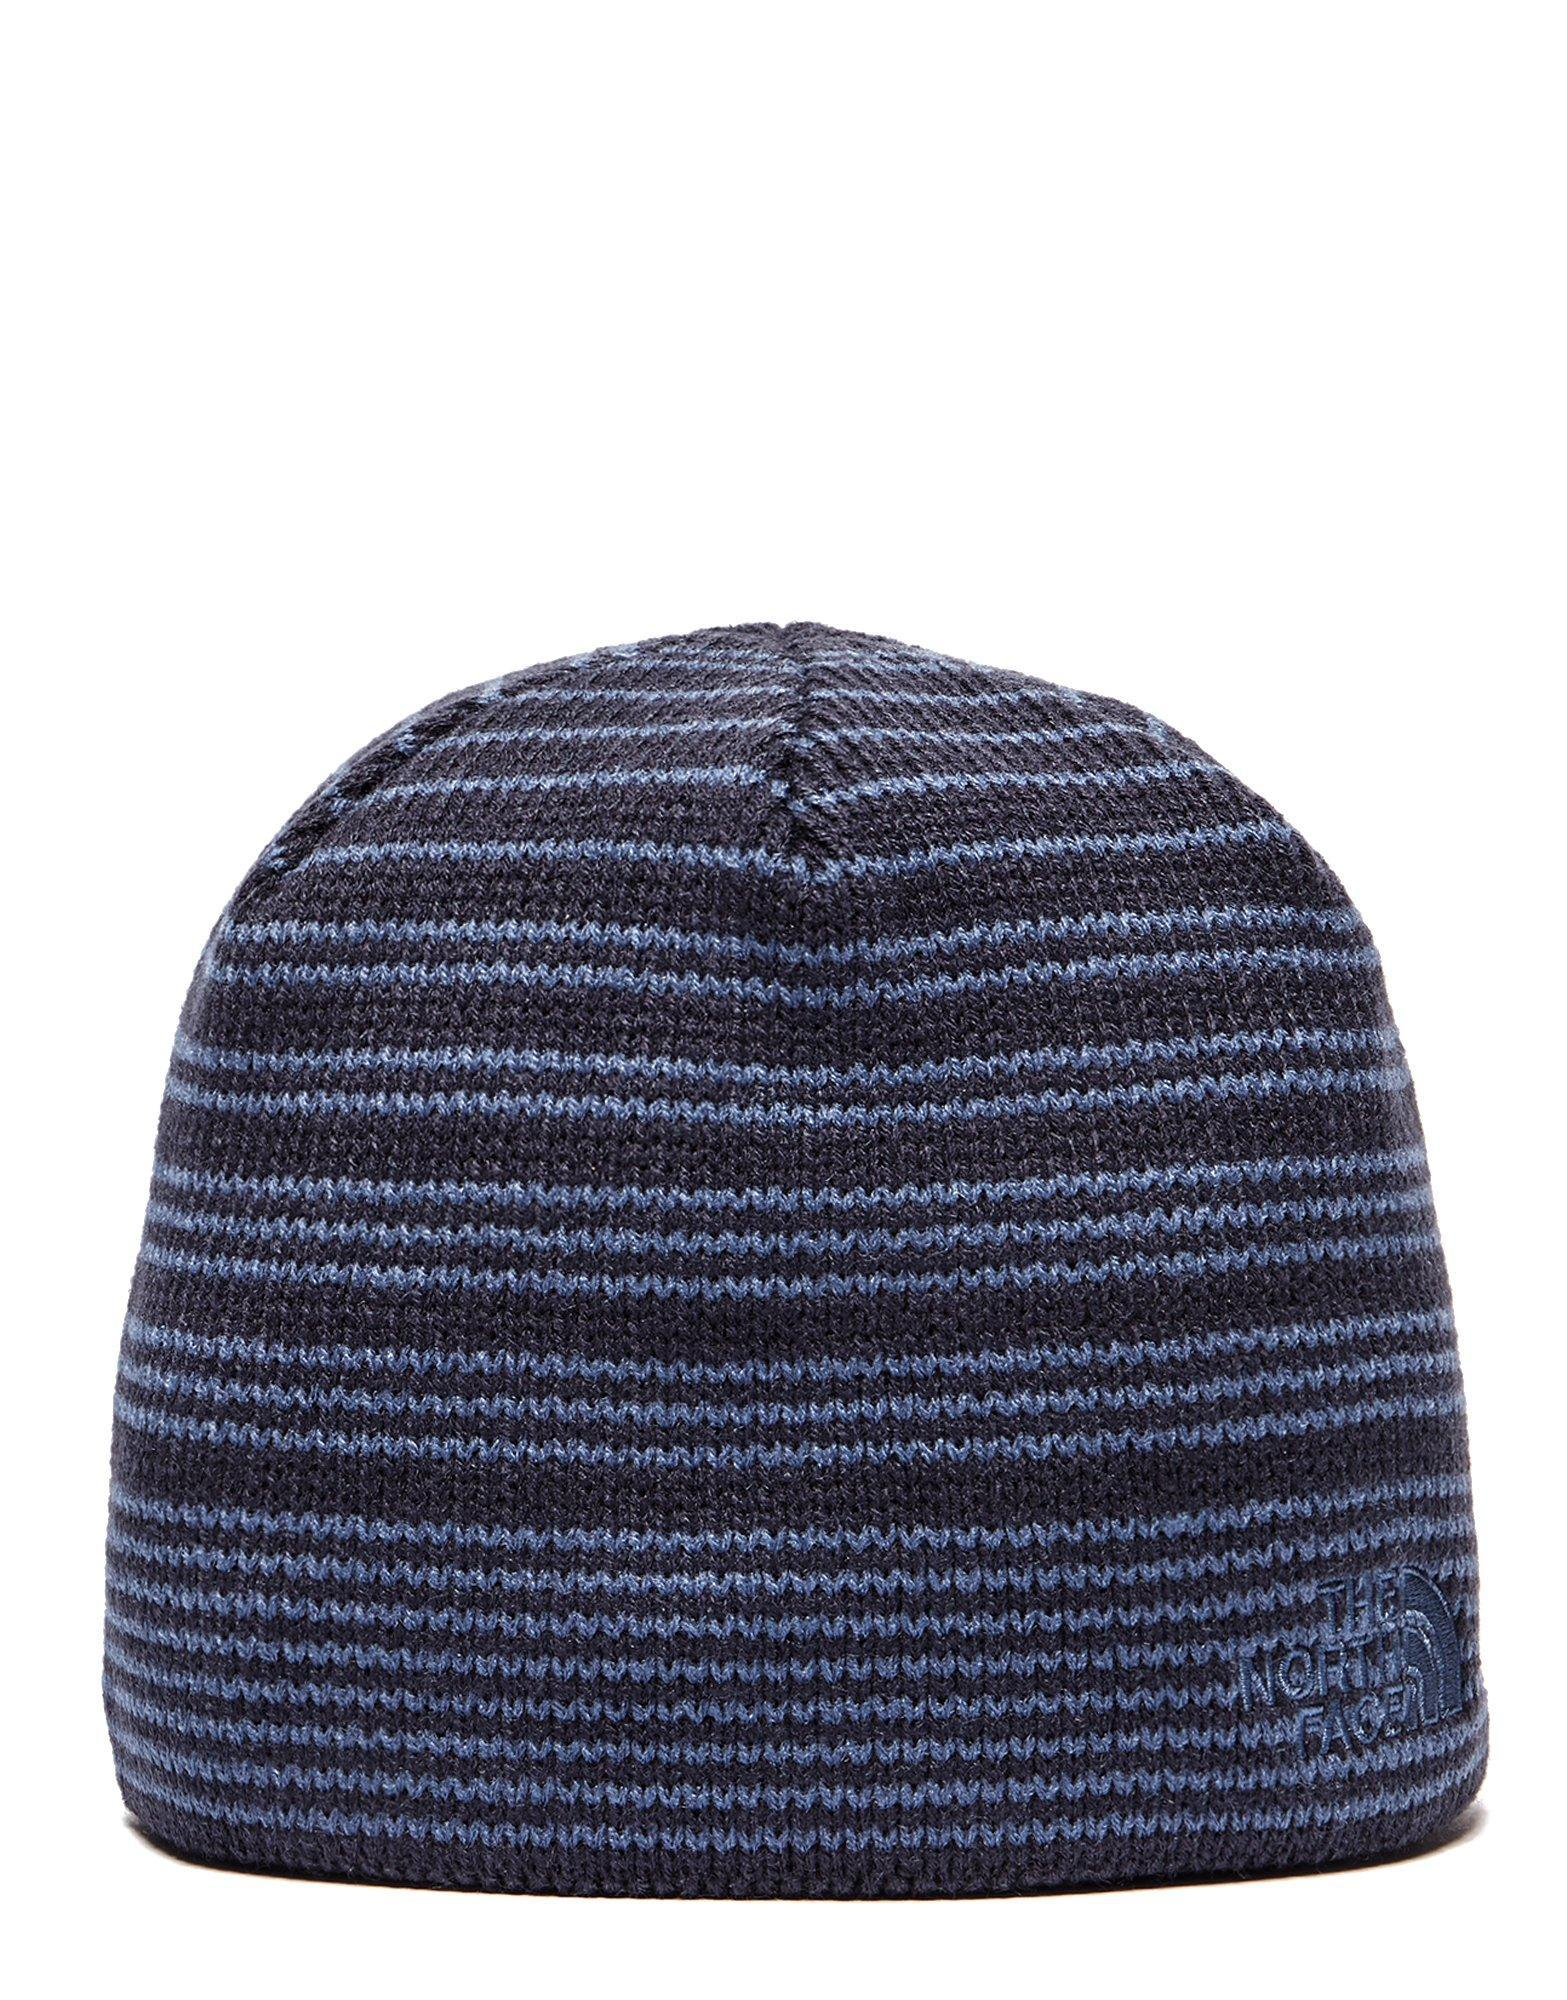 c1f14071340 Lyst - The North Face Bones Beanie Hat in Blue